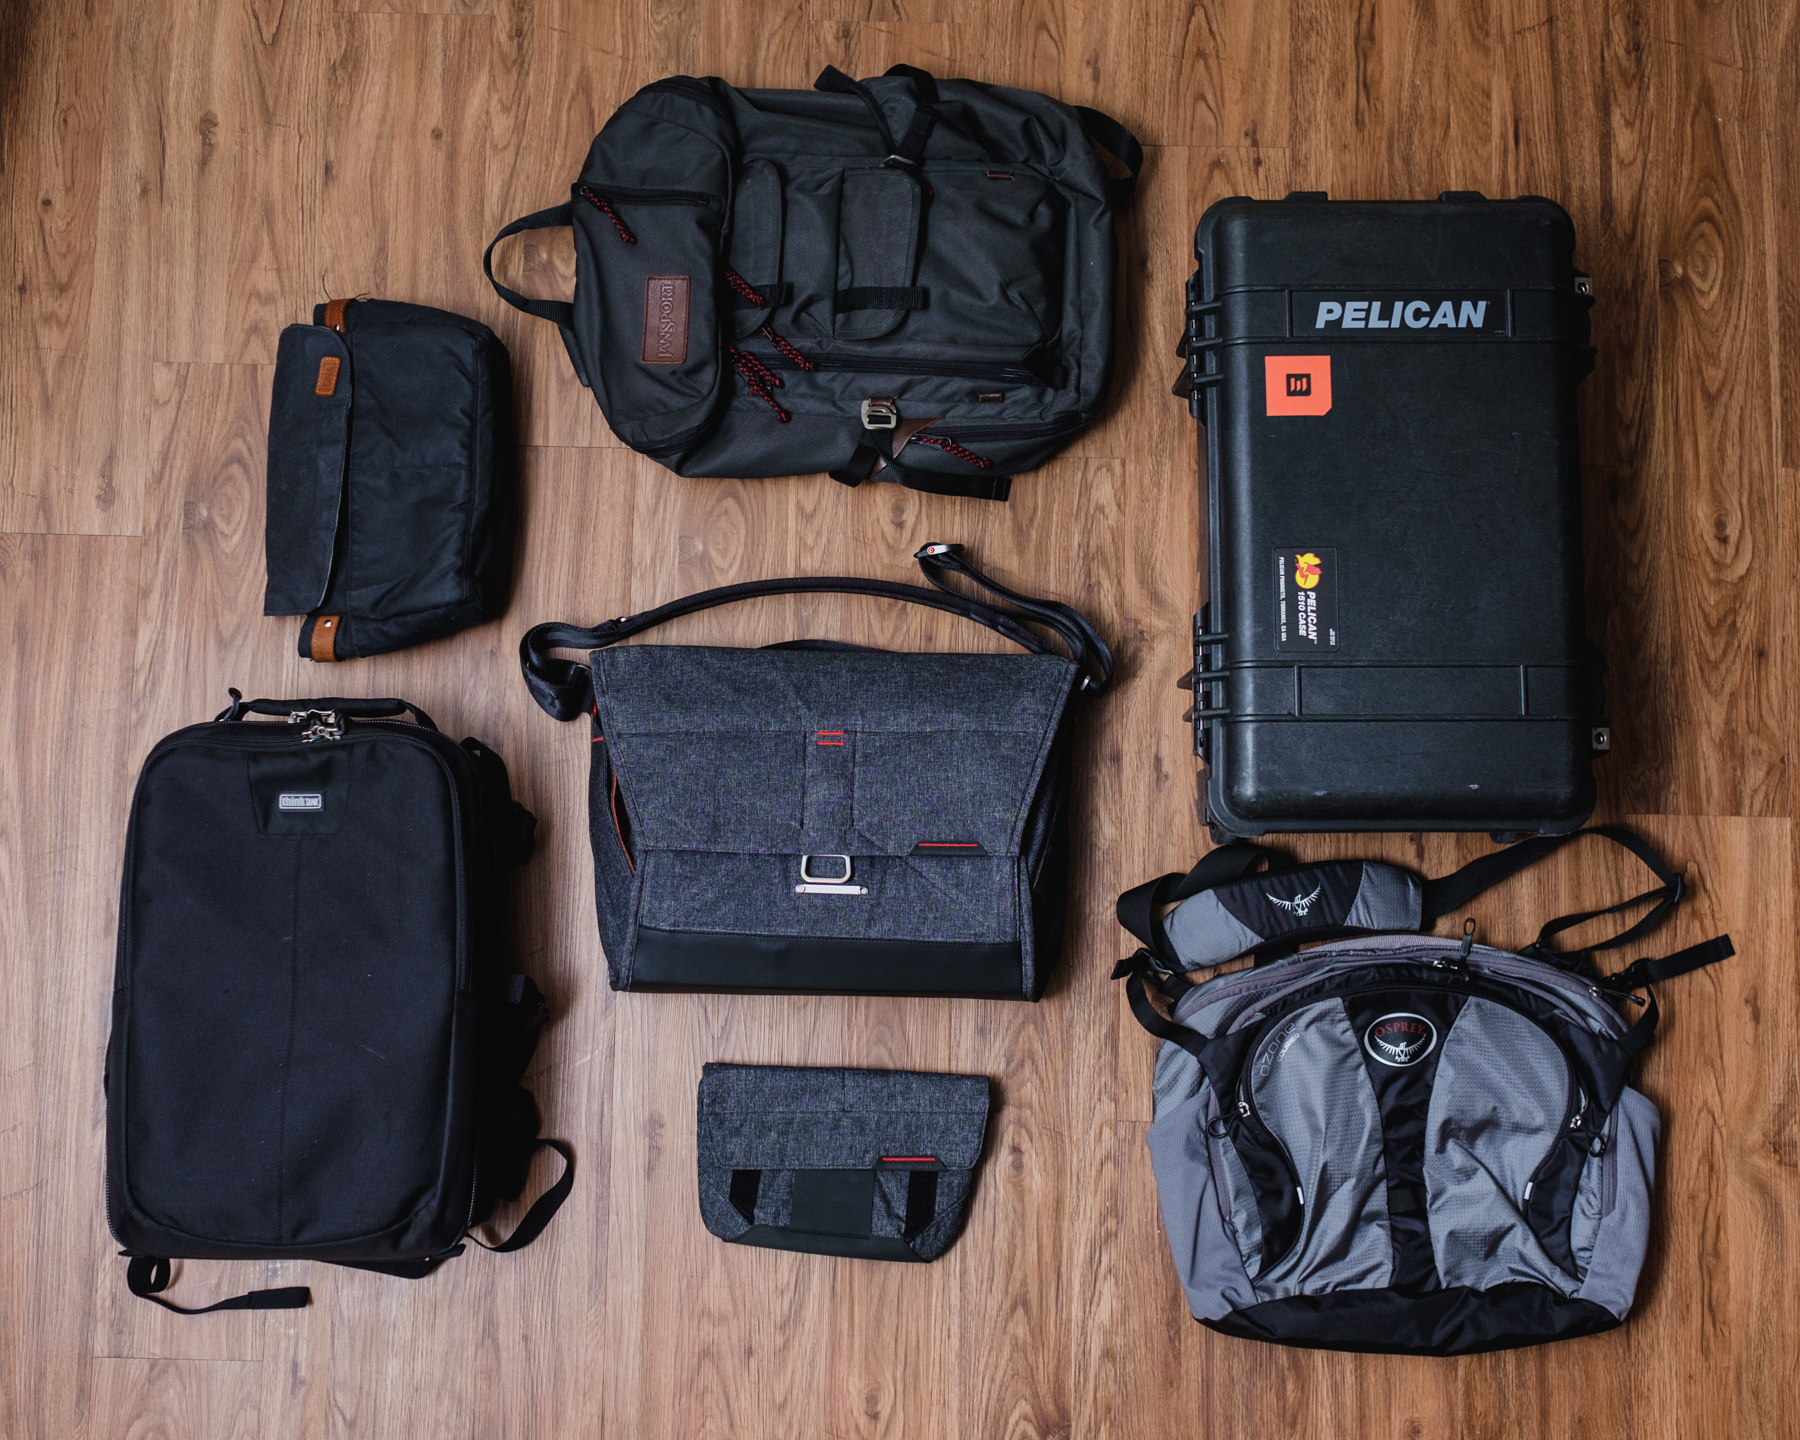 These are just a handful of the bags that I own and have used to carry my photography gear. My other bags were not included in this photo because there is not enough room to fit them all into one frame.